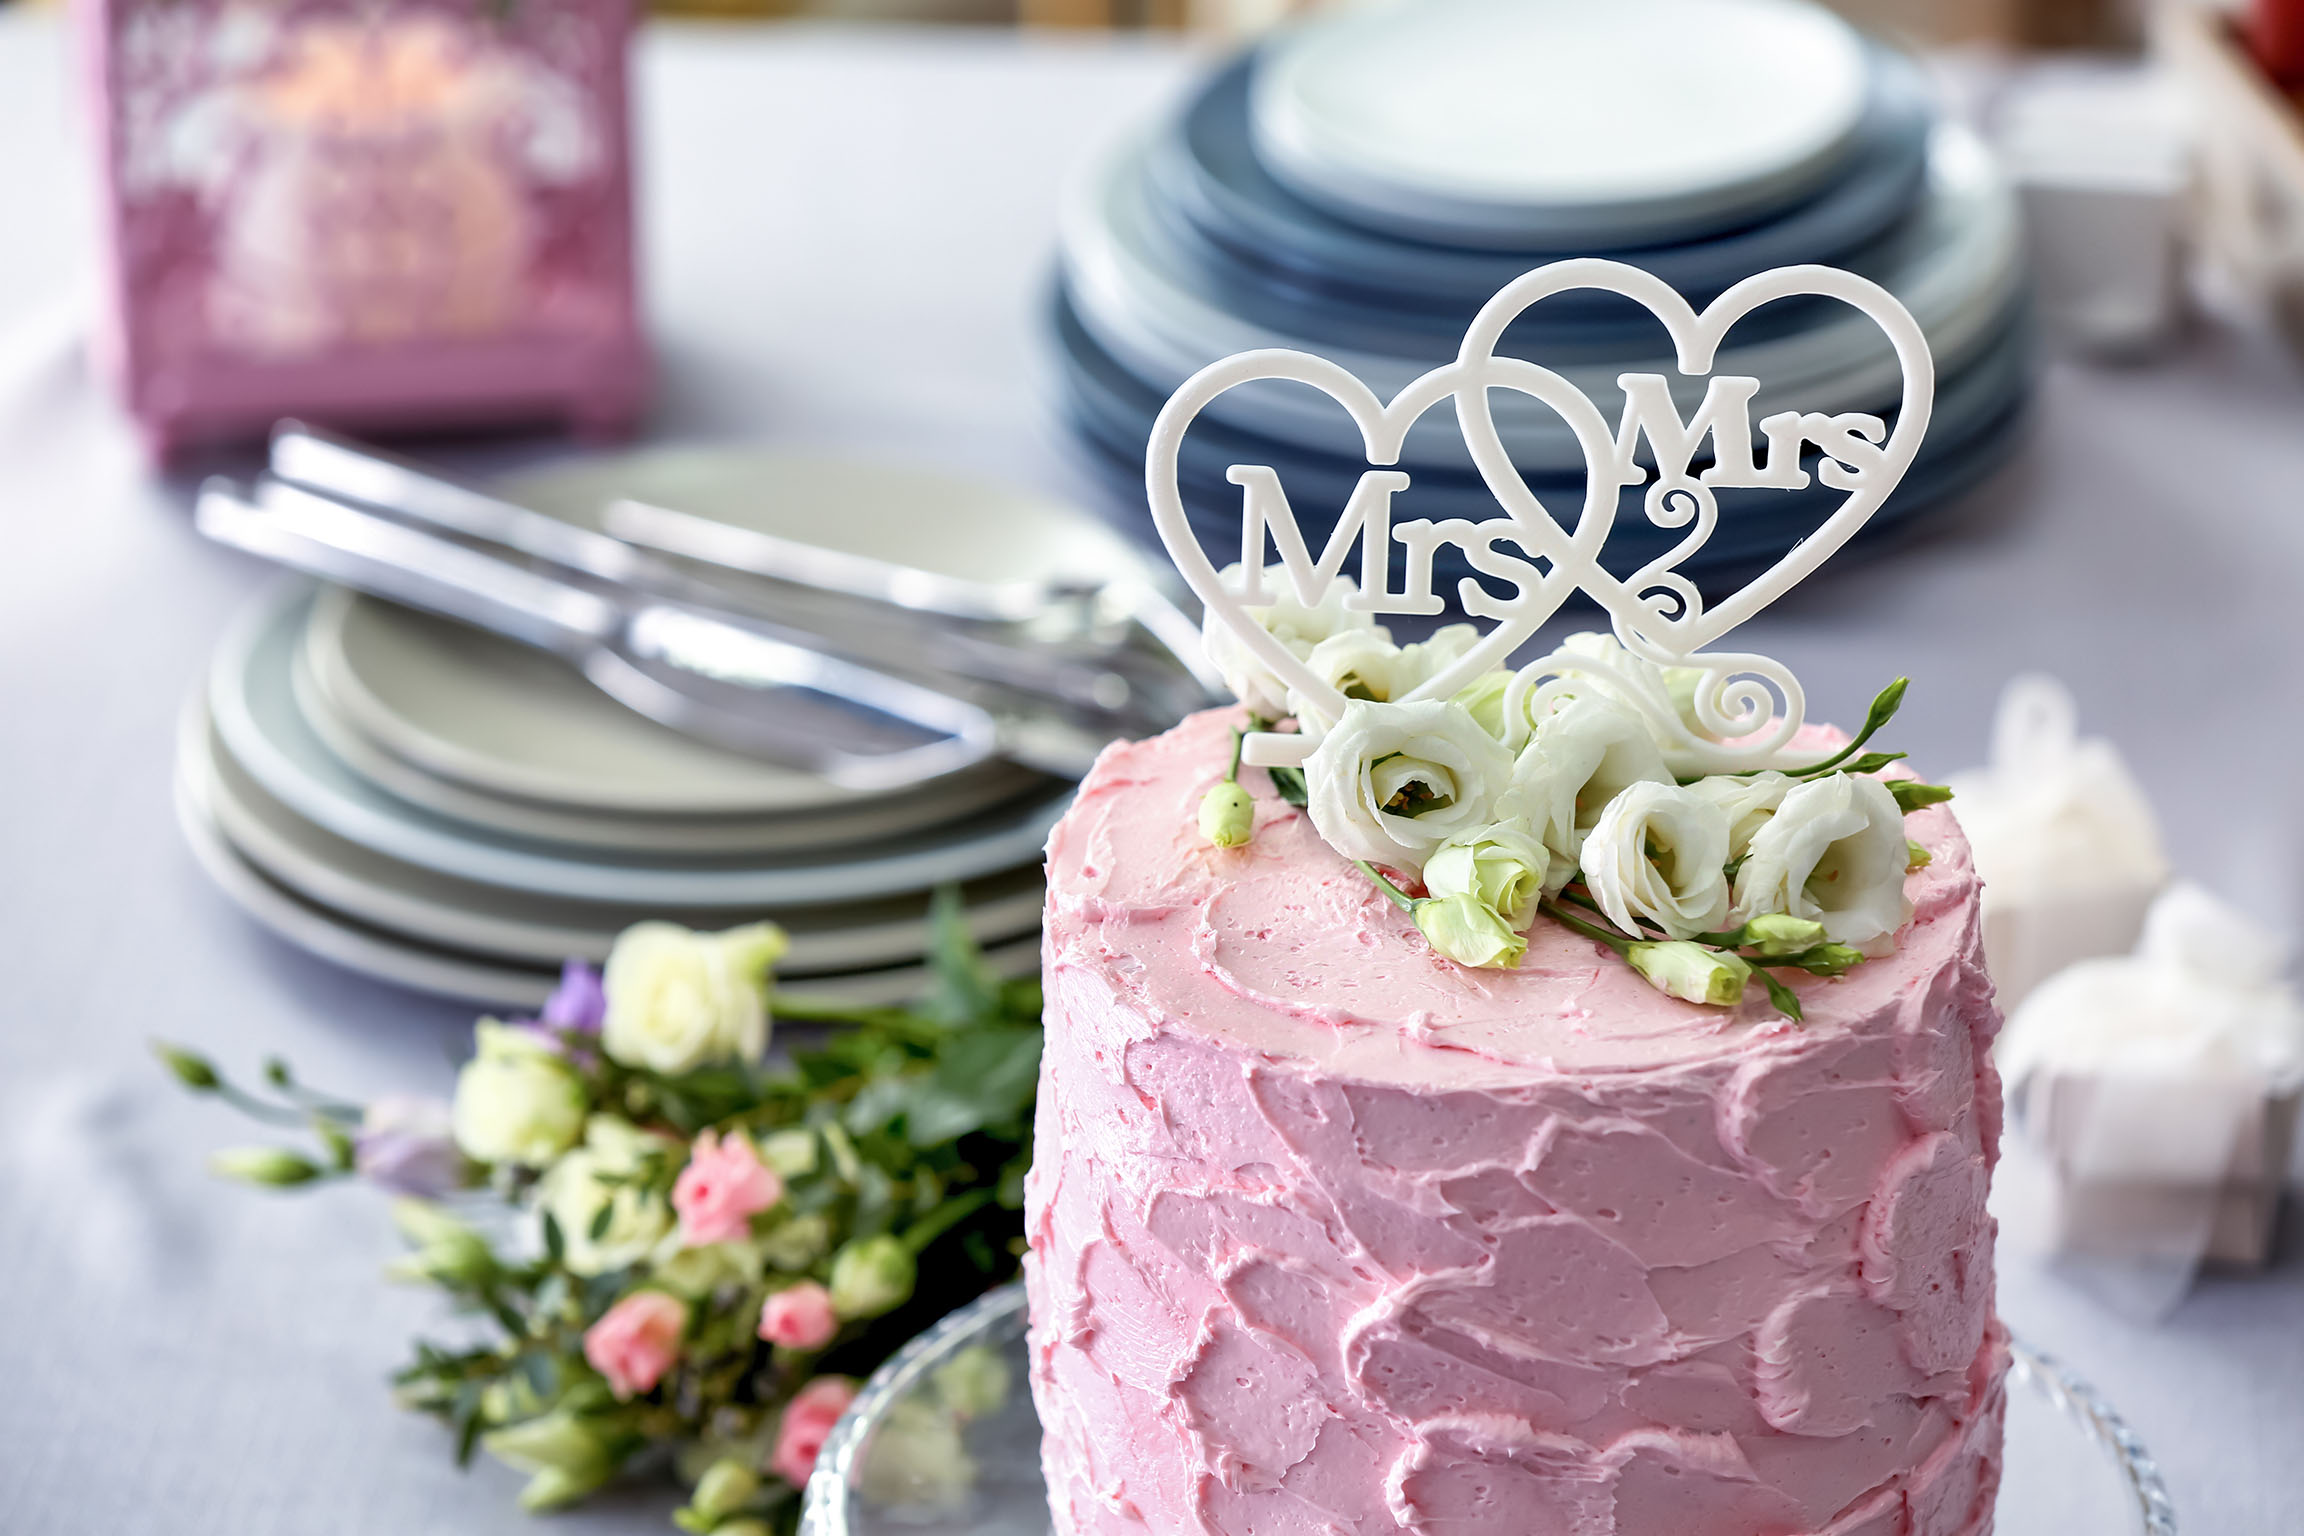 Delicious cake decorated with flowers and hearts for lesbian wedding